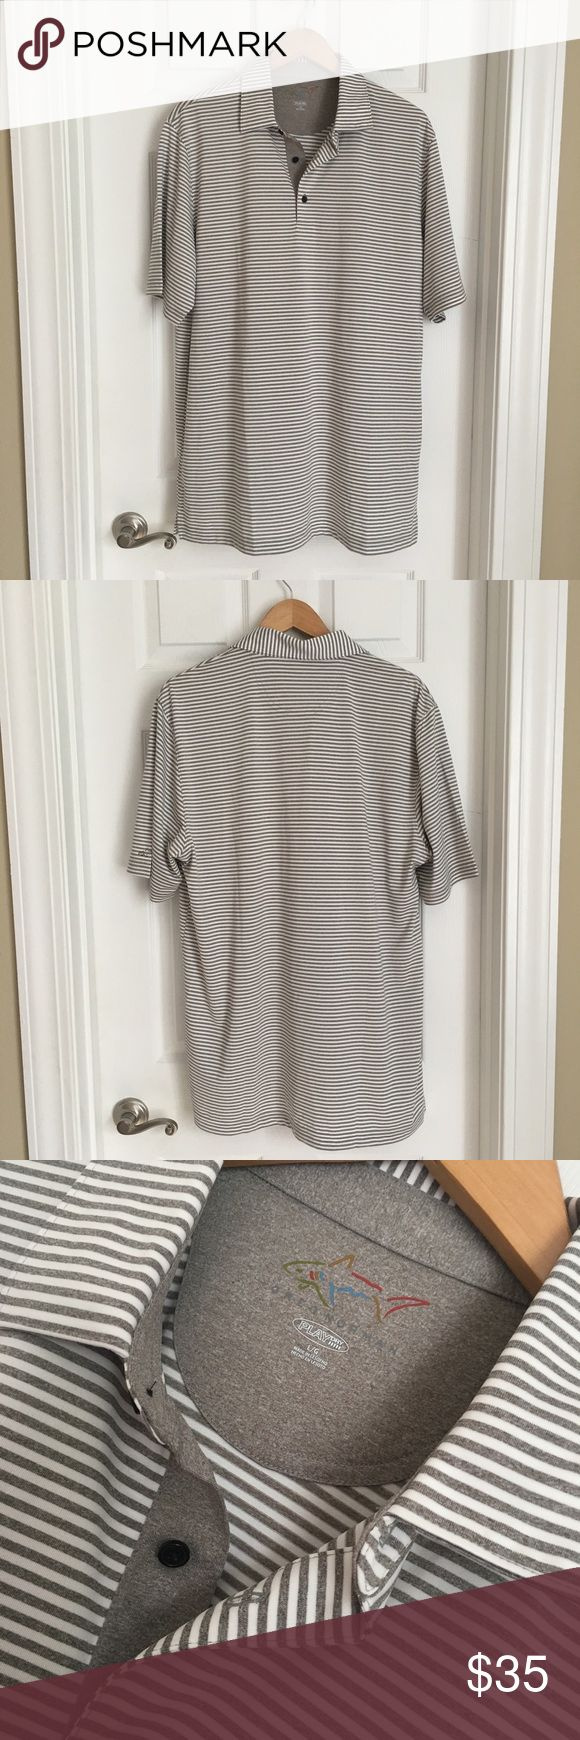 Greg Norman Play Dry Performance Polo Never worn Greg Norman Gray & White Striped Play Dry Performance Polo. Size Large. 10% Polyester. Smooth and silky--glides over skin and keeps you dry and cool. Perfect for golfing!  Pristine condition. Greg Norman Shirts Polos